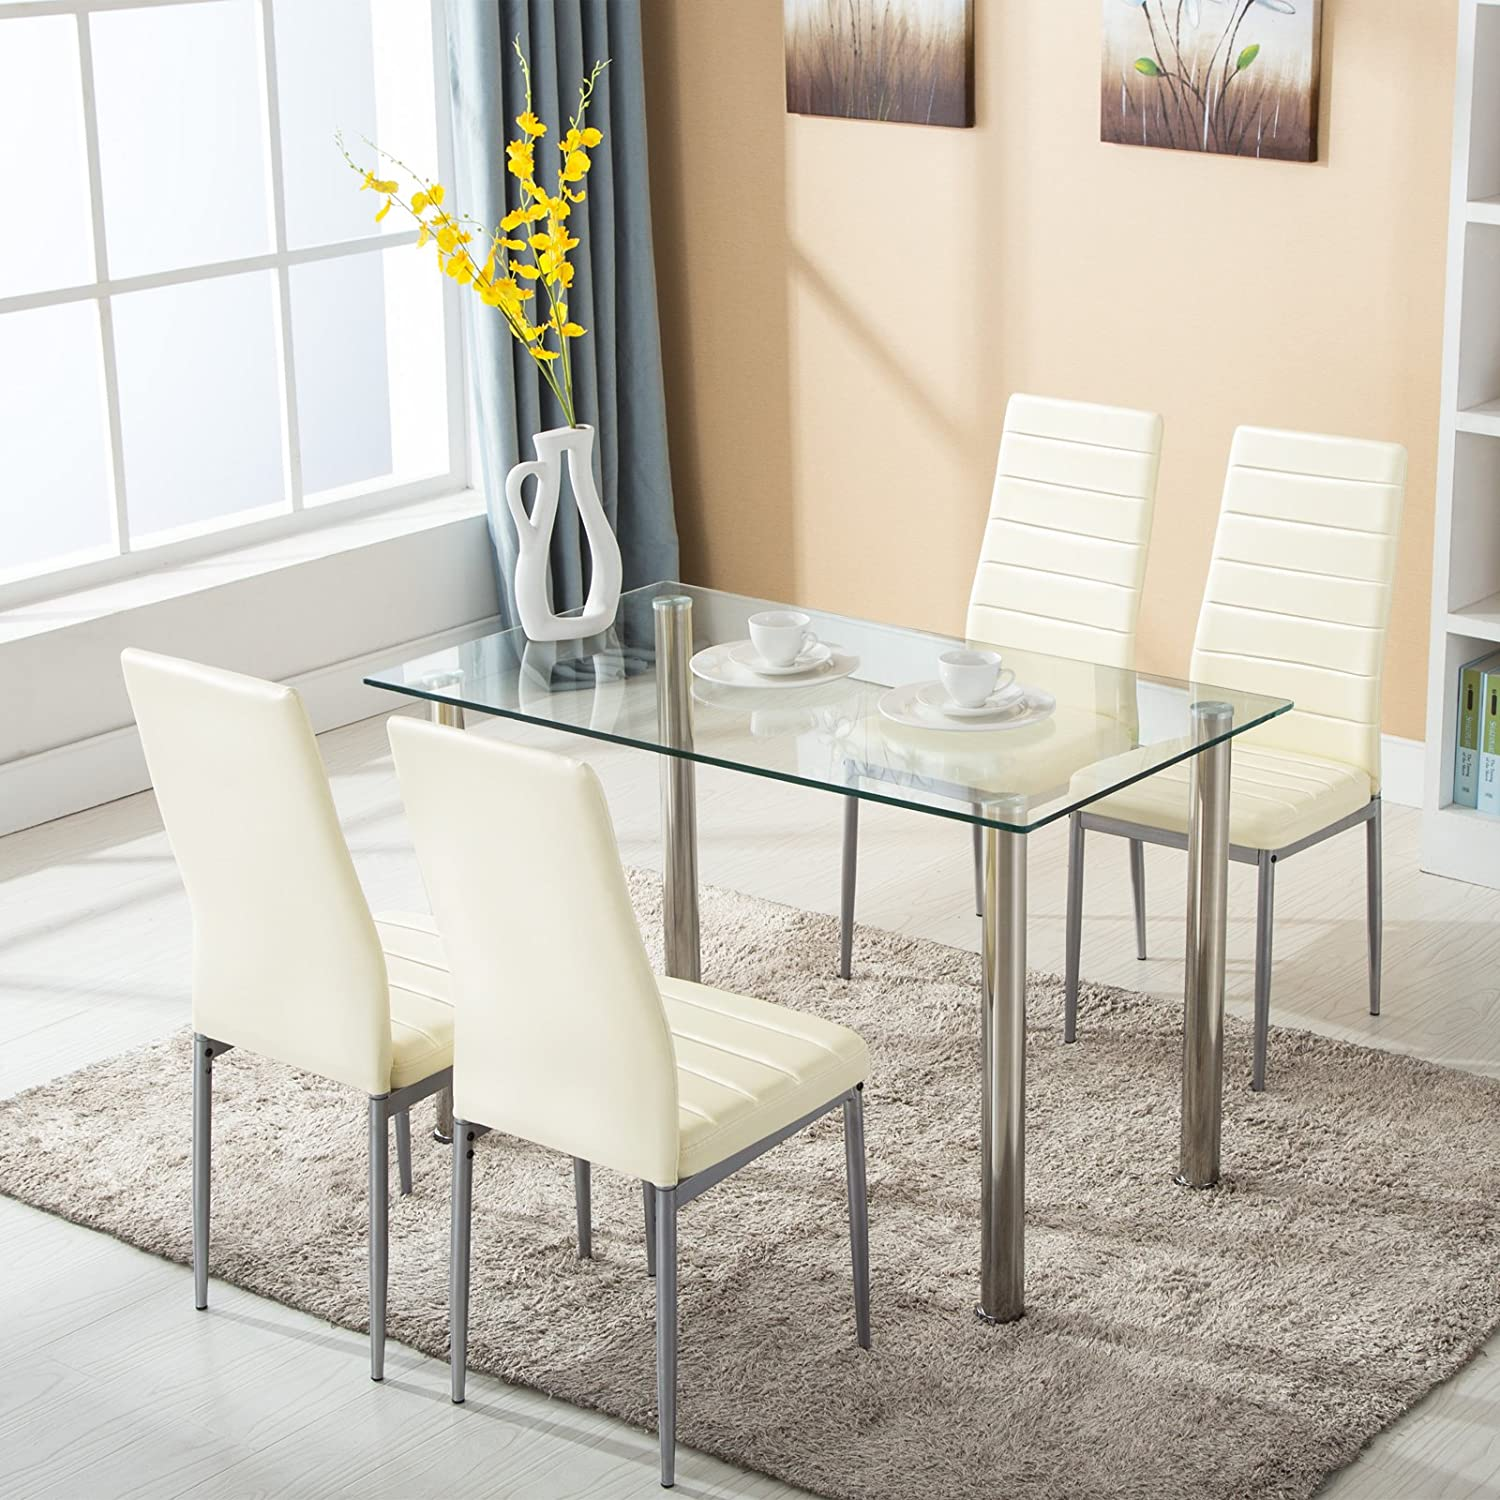 Mecor 5 Piece Dining Set, Glass Kitchen Table Set with 4 Leather Chairs Metal Legs Dining Room Kitchen Furniture,Light Yellow